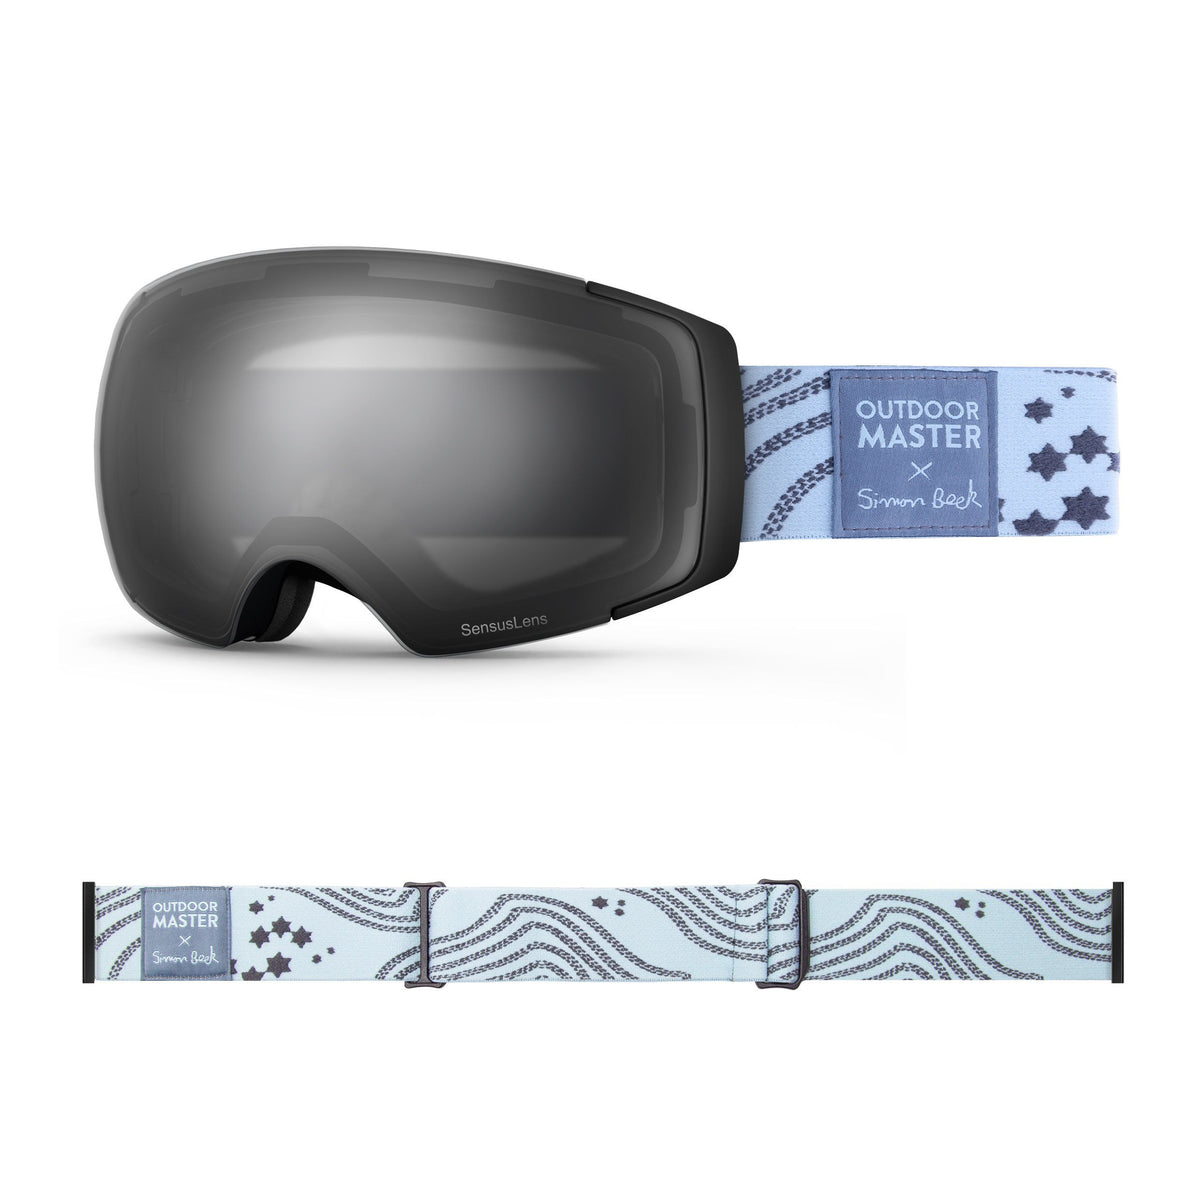 OutdoorMaster x Simon Beck Ski Goggles Pro Series - Snowshoeing Art Limited Edition OutdoorMaster GreenLens VLT 10% TAC Grey With REVO Silver Polarized Star Road-Lightsteelblue